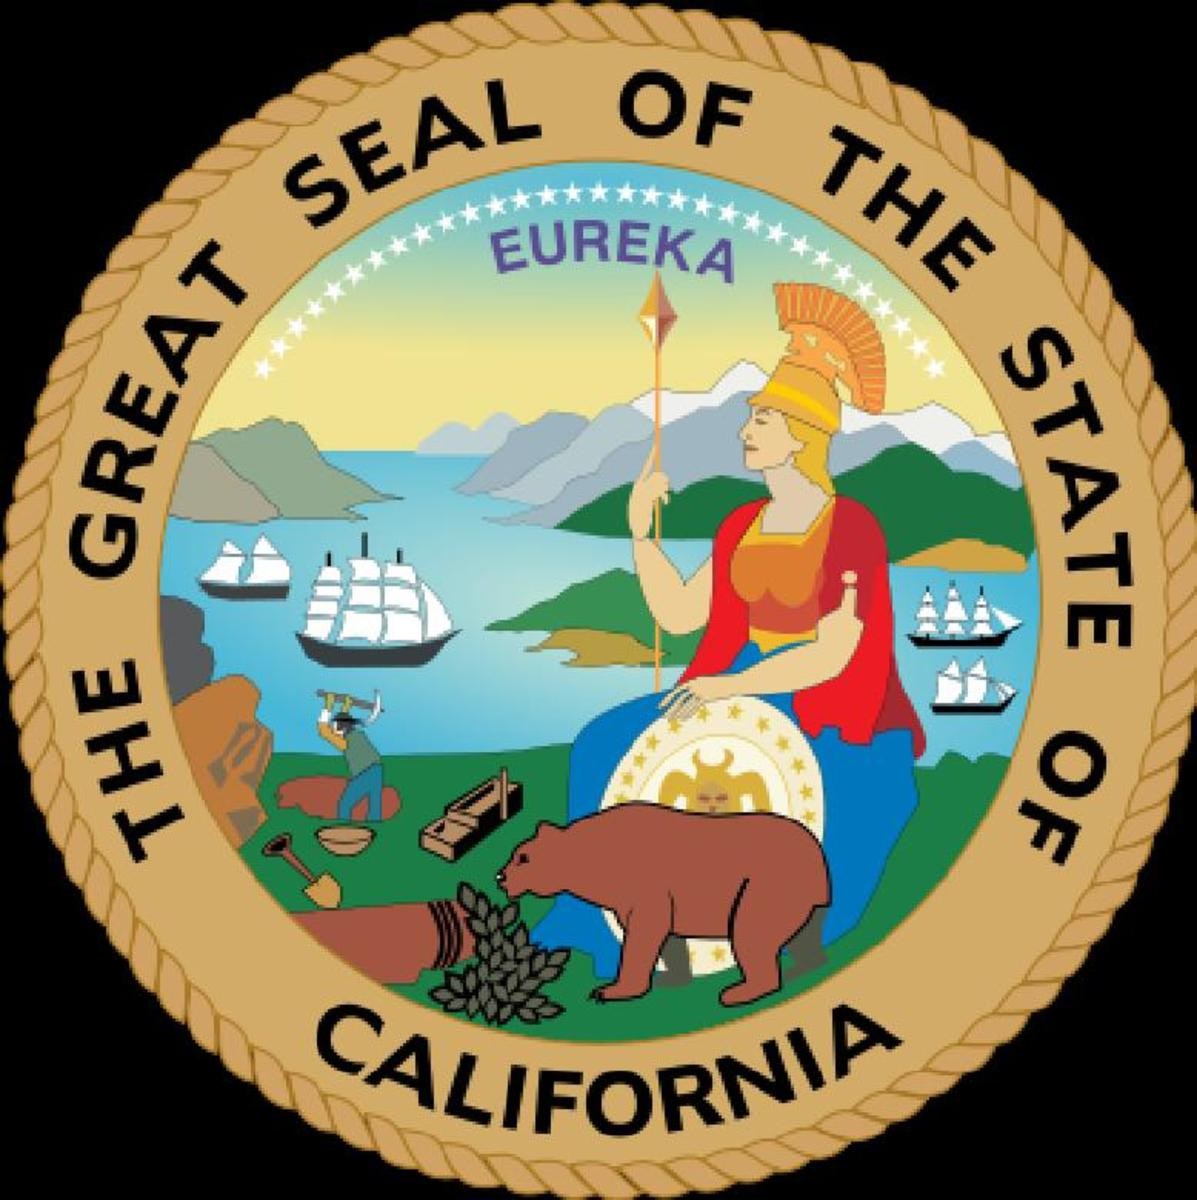 The GREAT-SEAL of CALIFORNIA